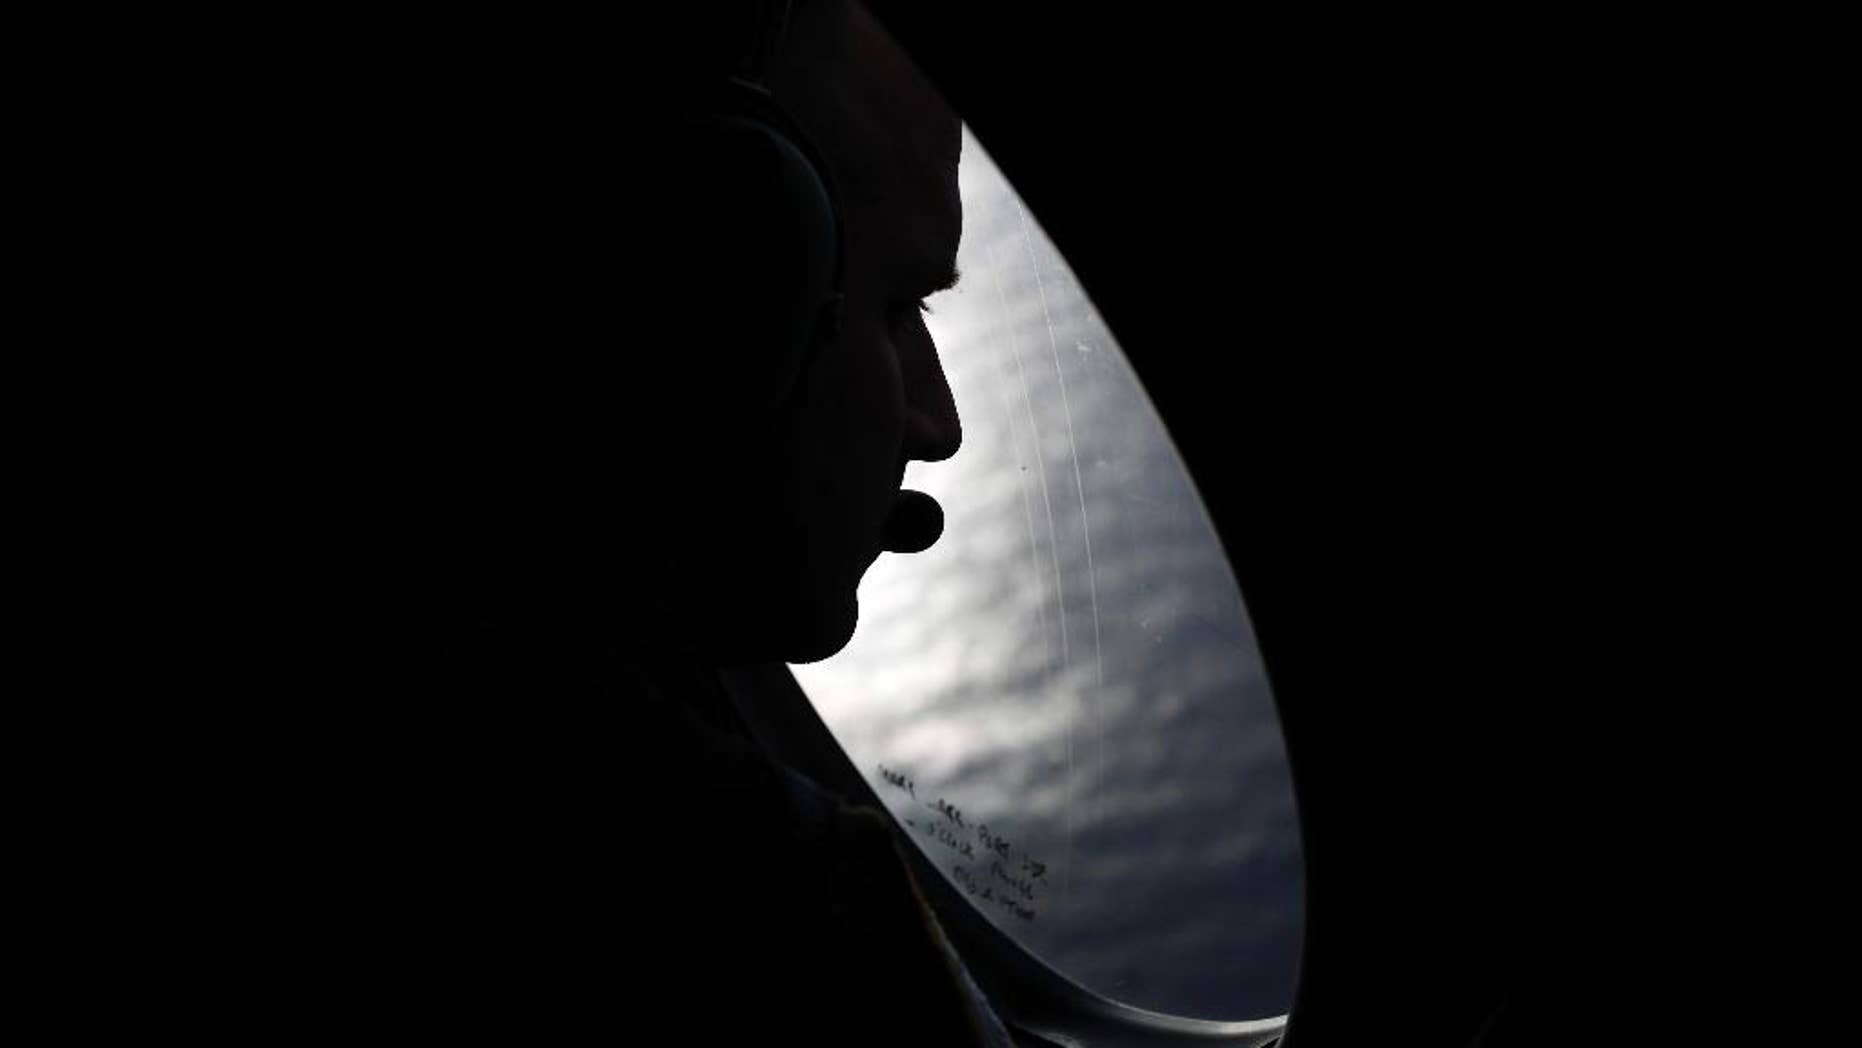 A Royal New Zealand Air Force crew member looks into the southern Indian Ocean from a P-3K2 Orion aircraft searches for missing Malaysian Airlines flight 370, Saturday, March 29, 2014. A day after the search for the Malaysian jetliner shifted to a new area of the Indian Ocean, ships on Saturday plucked objects from the sea to determine whether they were related to the missing jet. None were confirmed to be from the plane, leaving searchers with no sign of the jet three weeks after it disappeared. (AP Photo/Jason Reed, Pool)